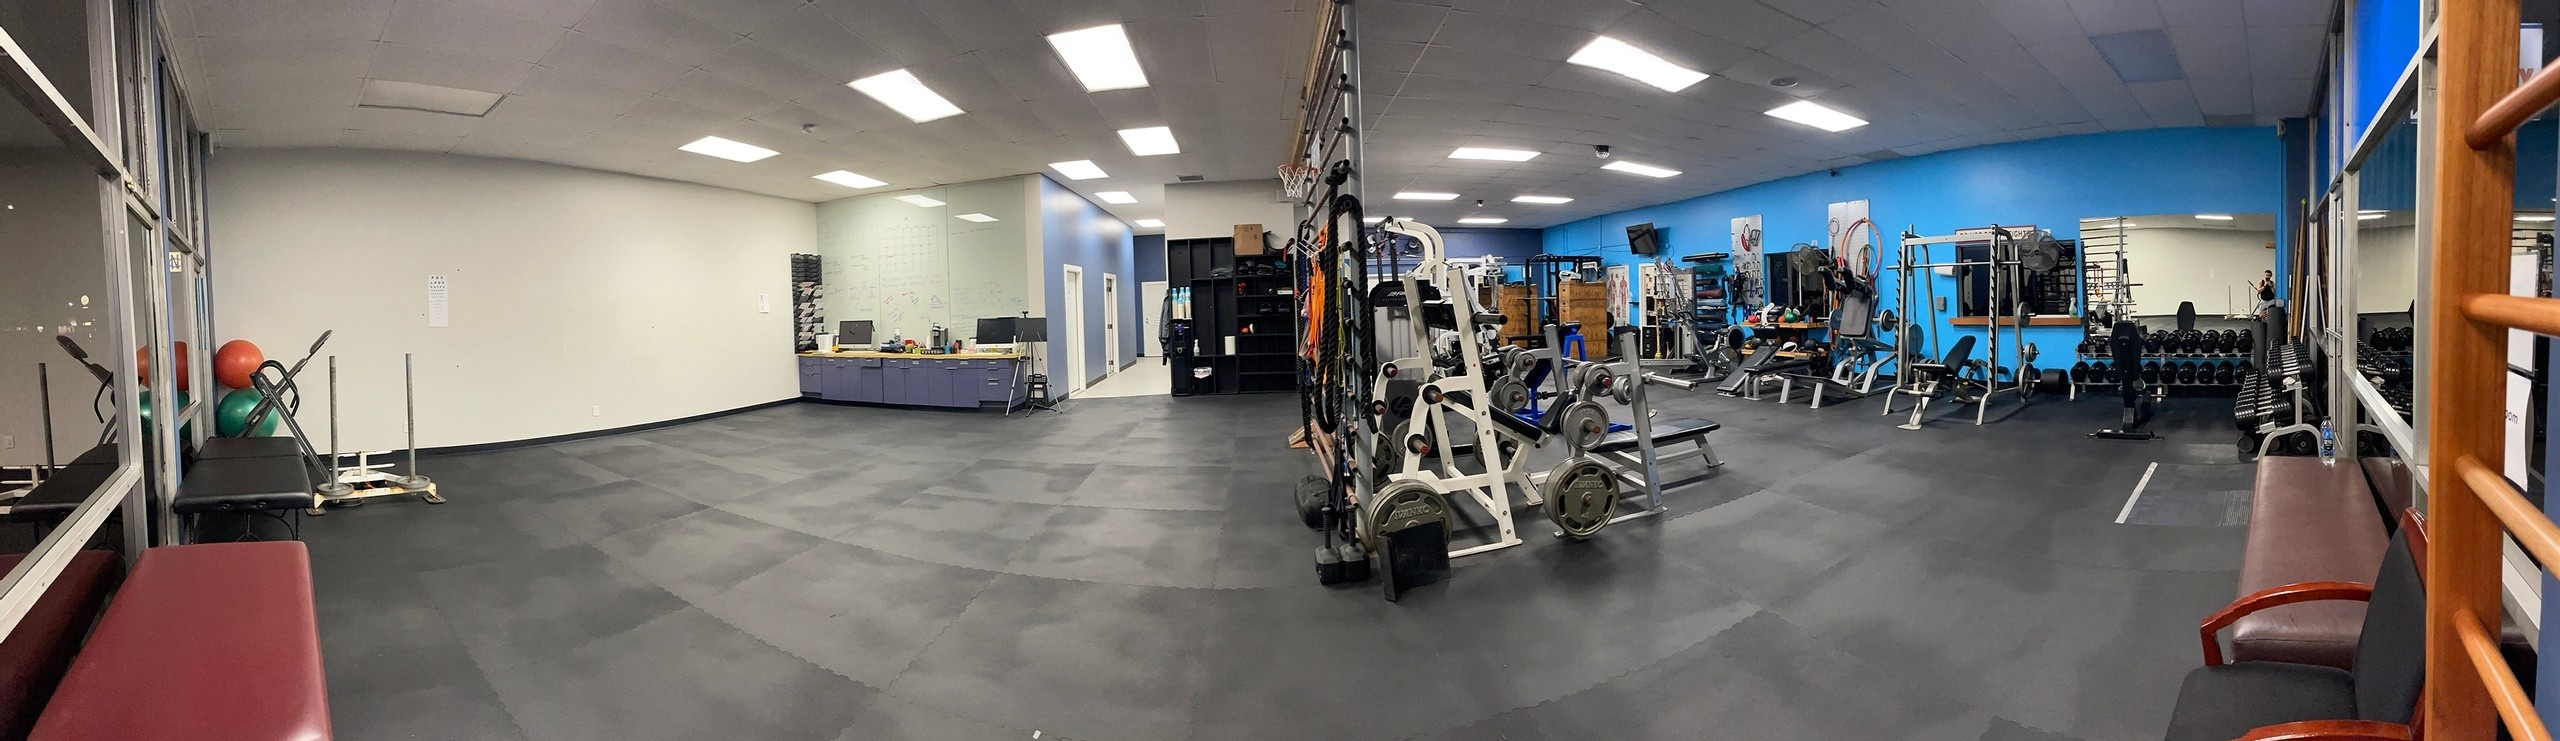 interior of S10 Fitness facility in San Diego, California